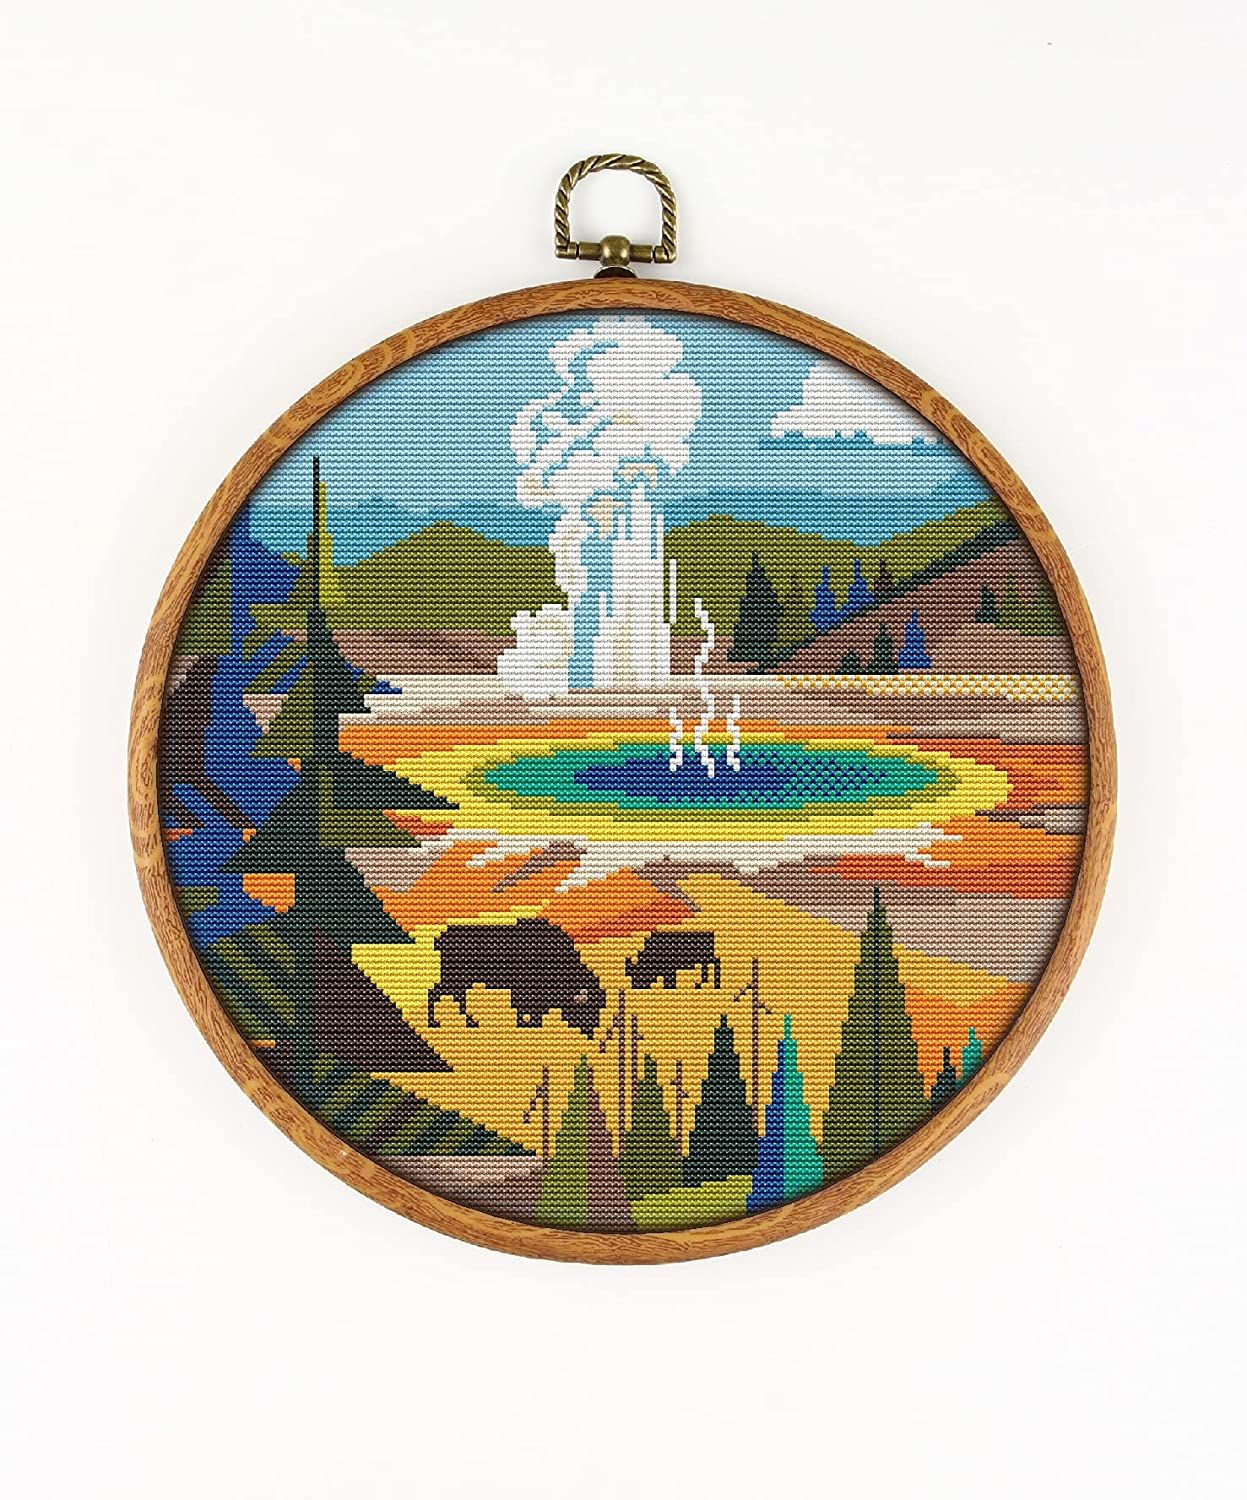 Special Campaign Yellowstone National Park K466 Counted Threa Cross Stitch Branded goods KIT#3.